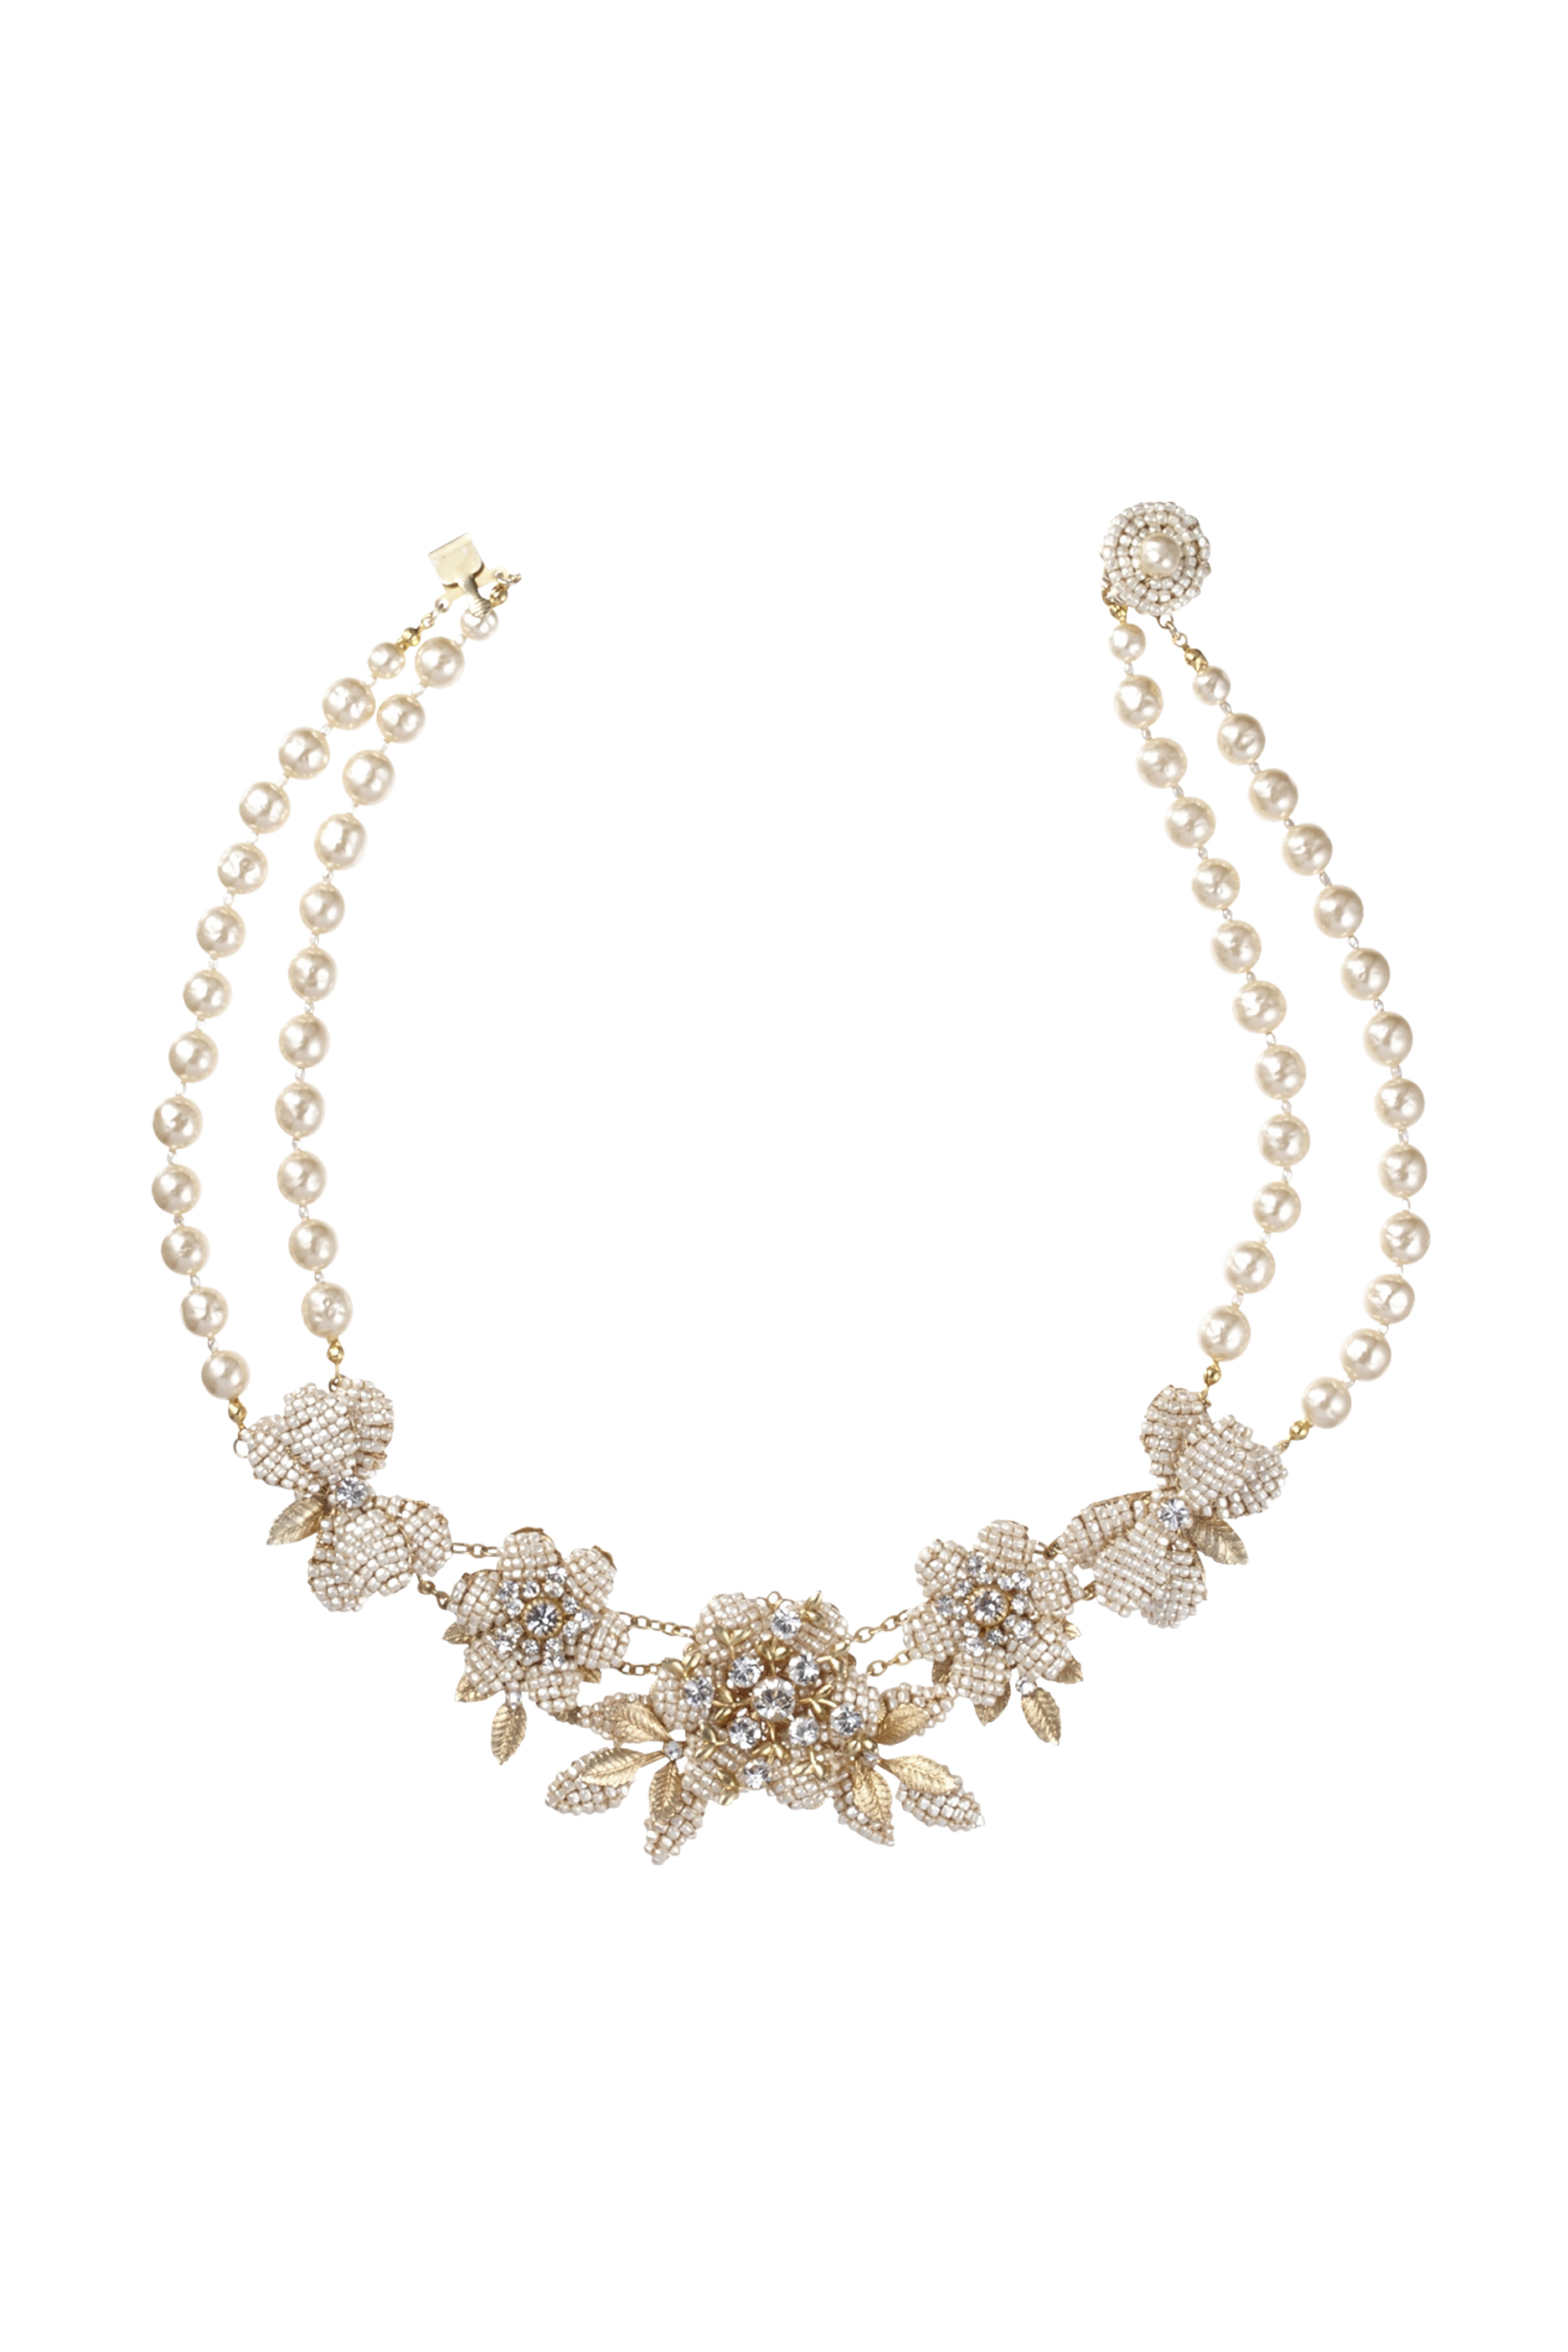 [RENTAL][FLOWER SHORT Necklace]by MIRIAM HASKELL(参考価格¥146,000)